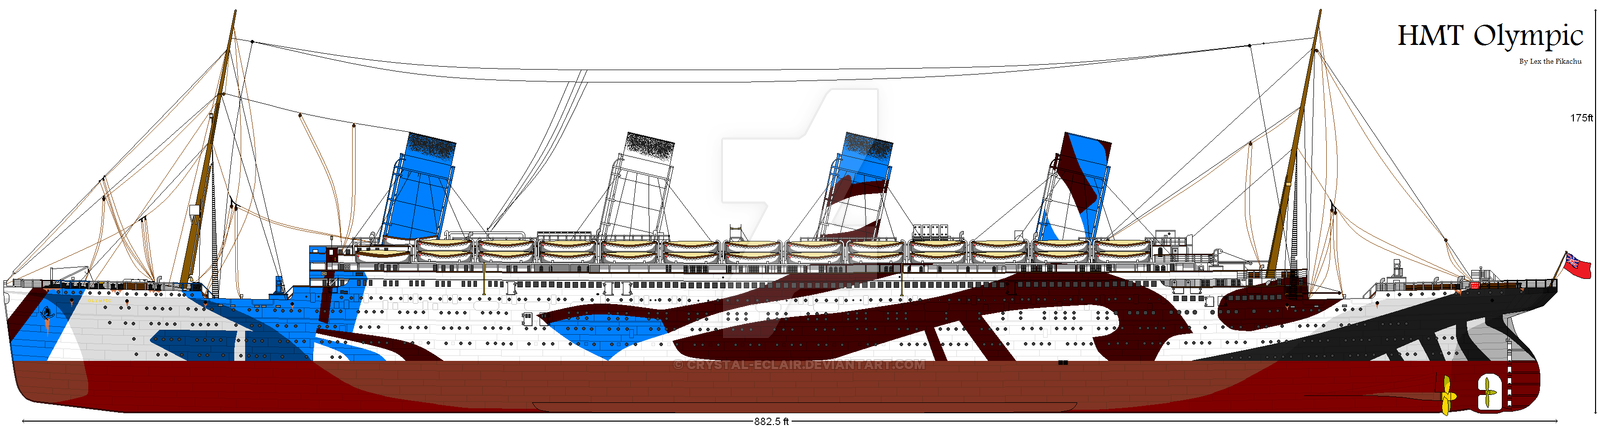 RMS Olympic 2c0e8a10